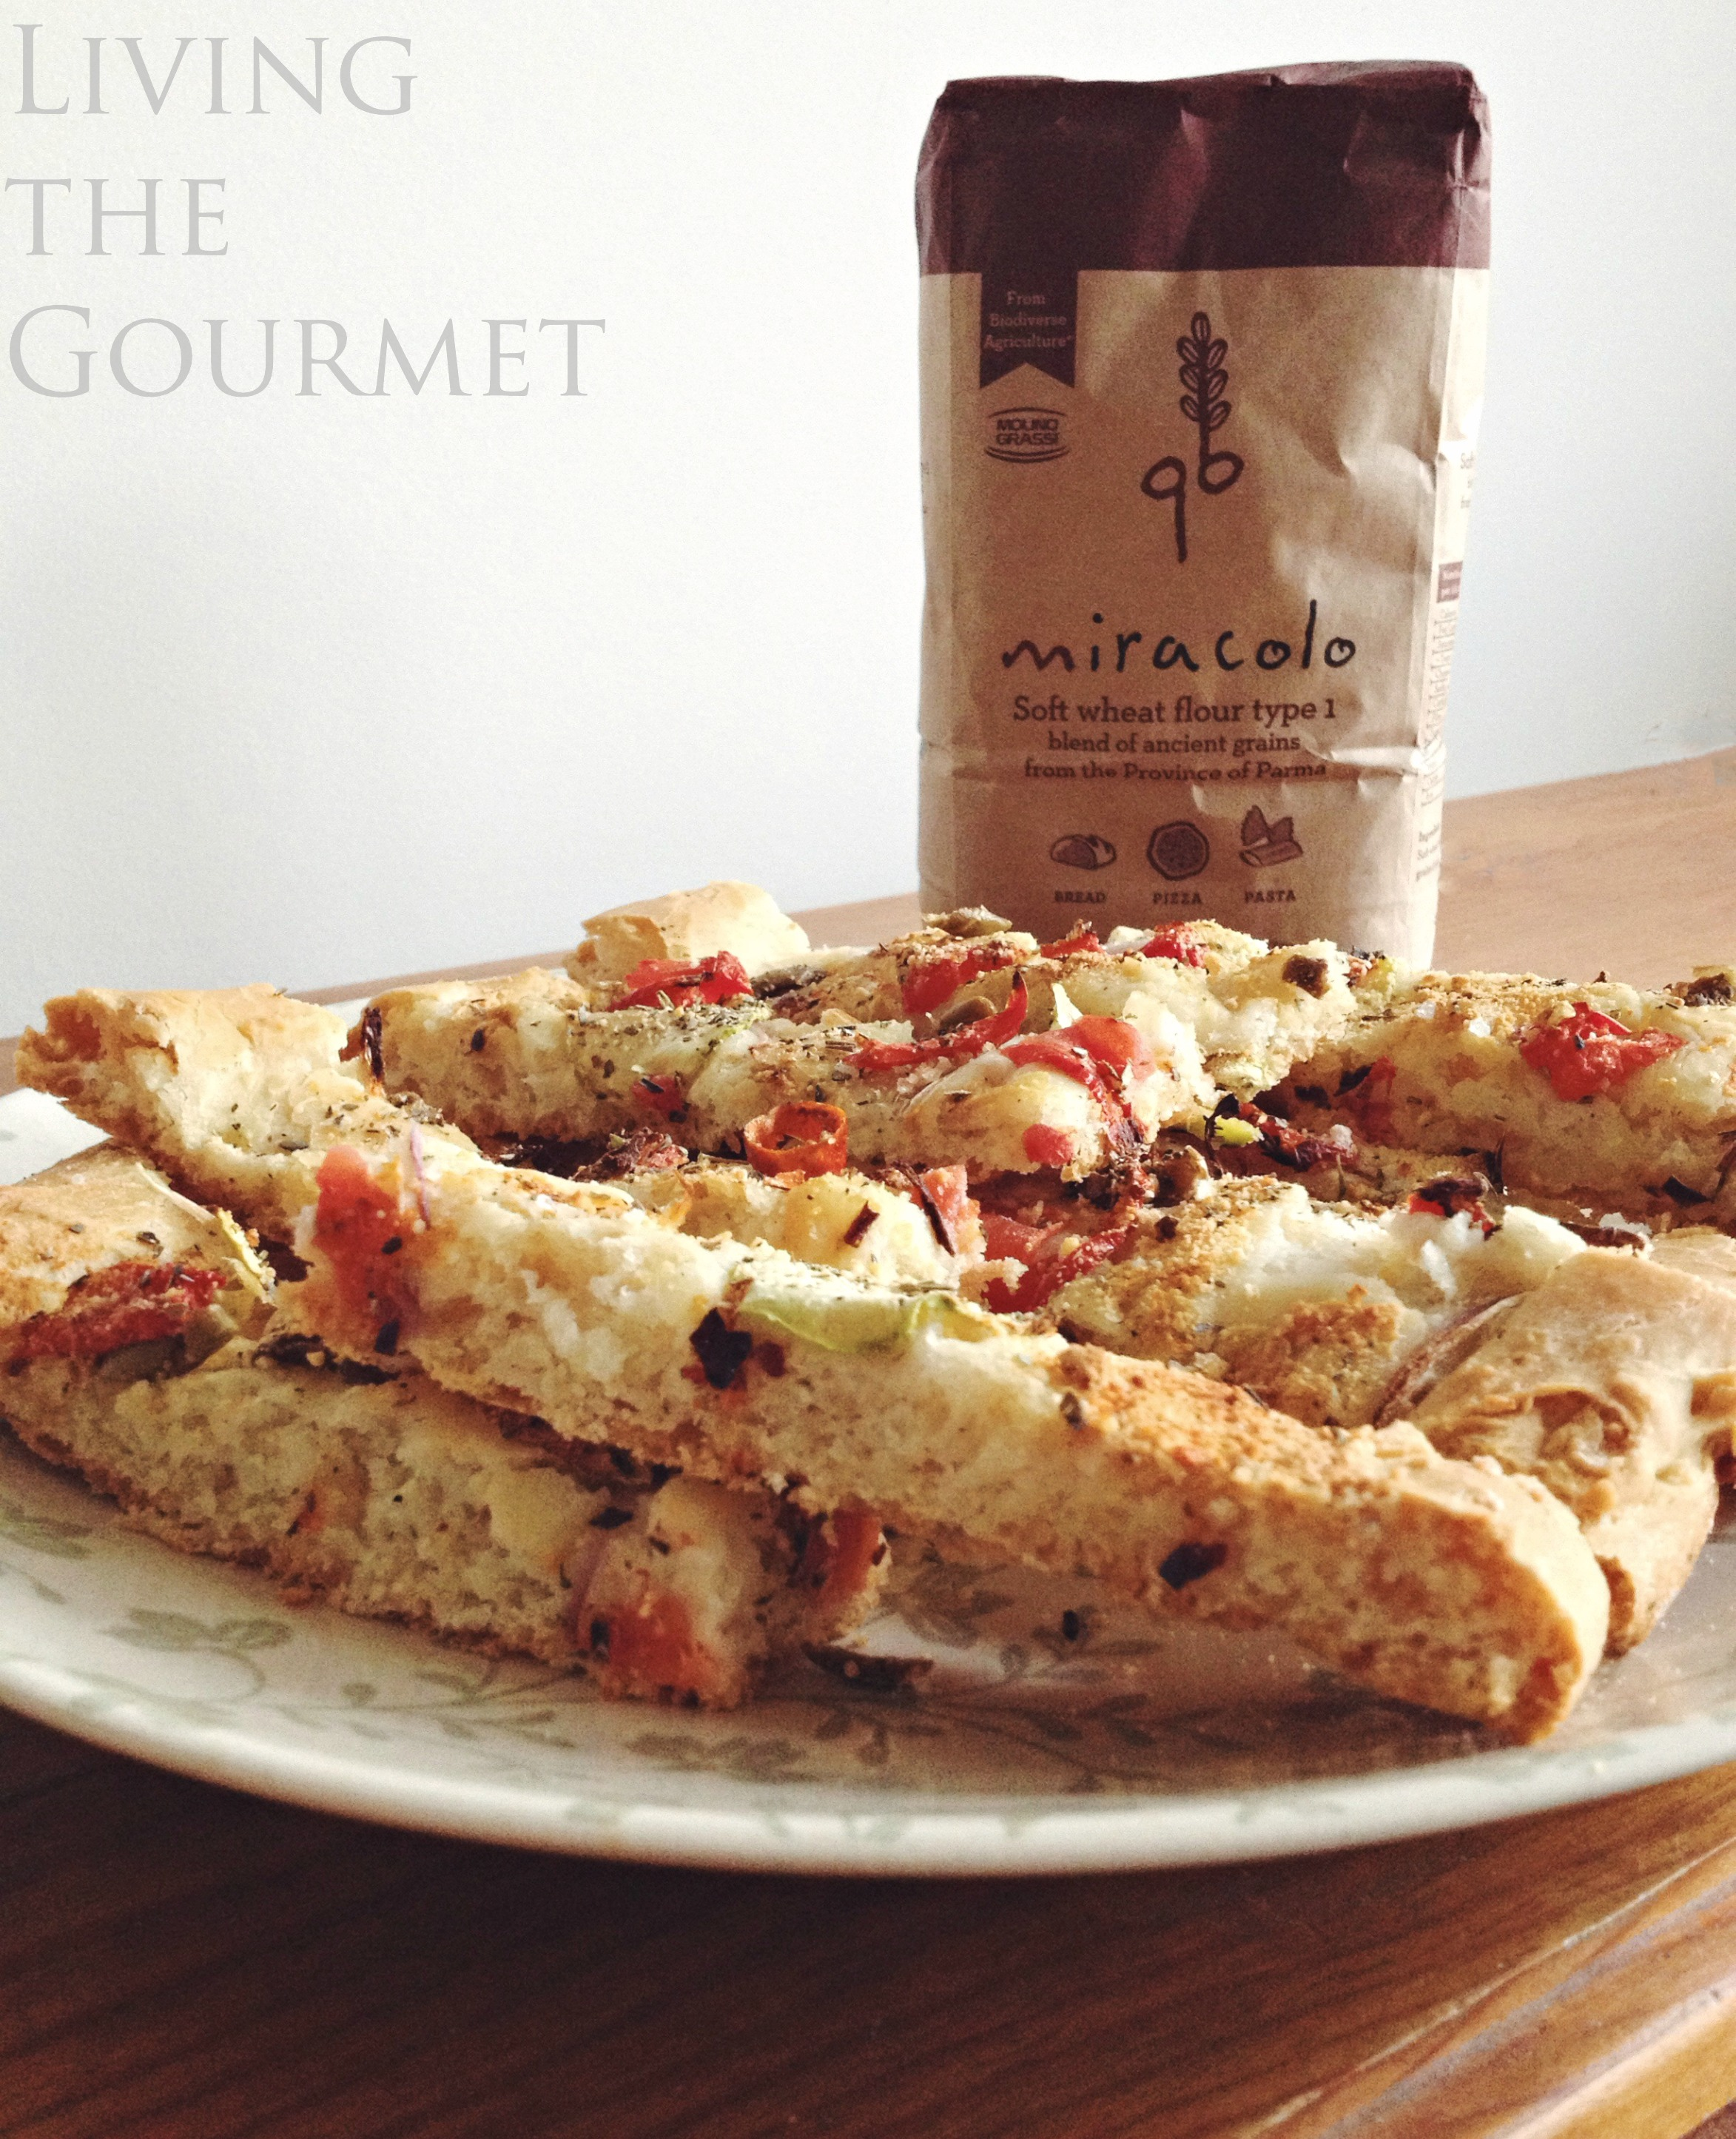 Living the Gourmet: Focaccia featuring Grano del Miracolo